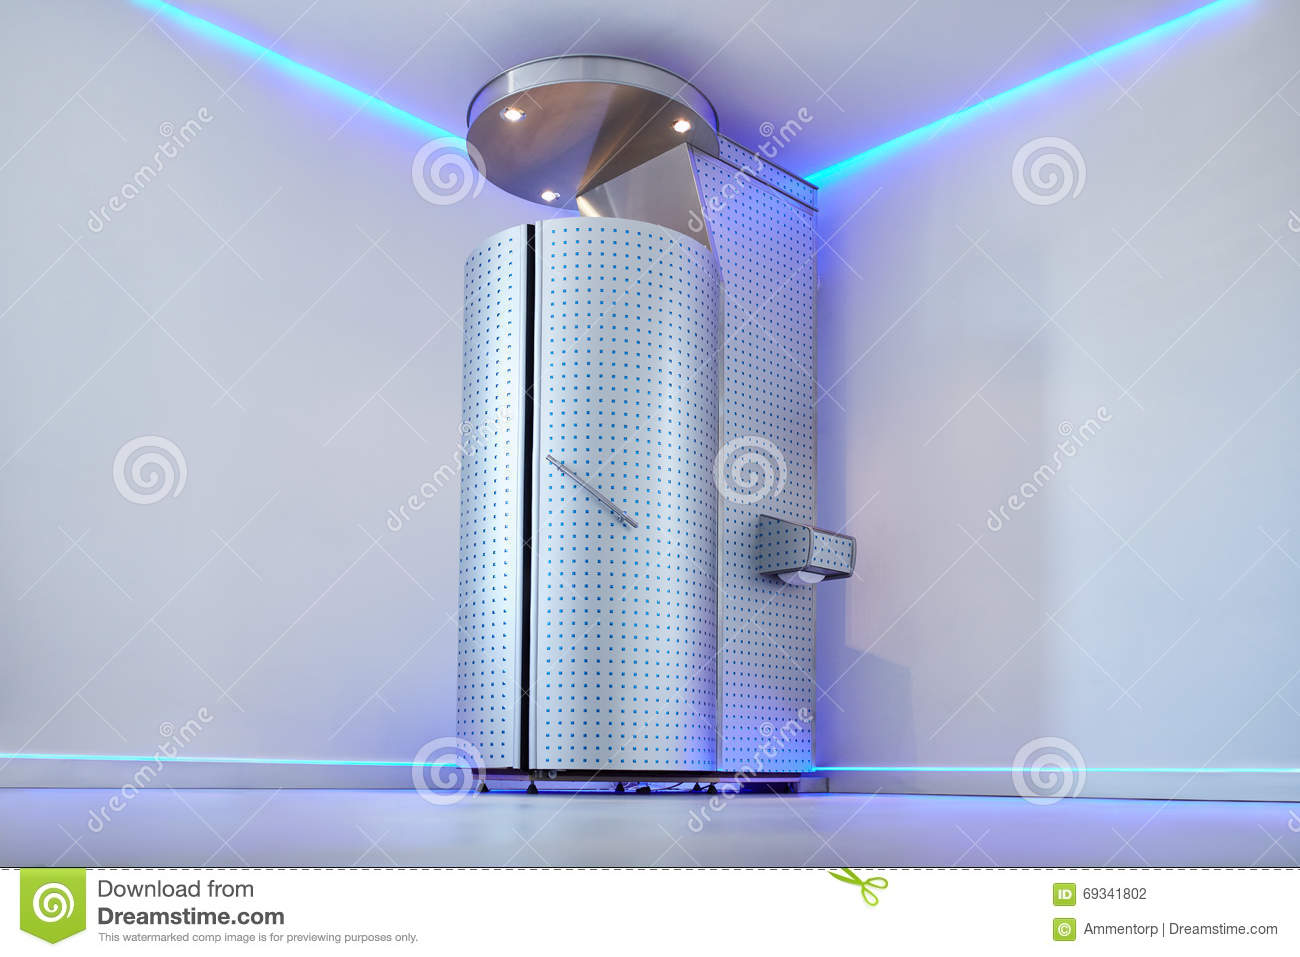 Cryo Sauna For Whole Body Cryotherapy Stock Photo - Image of